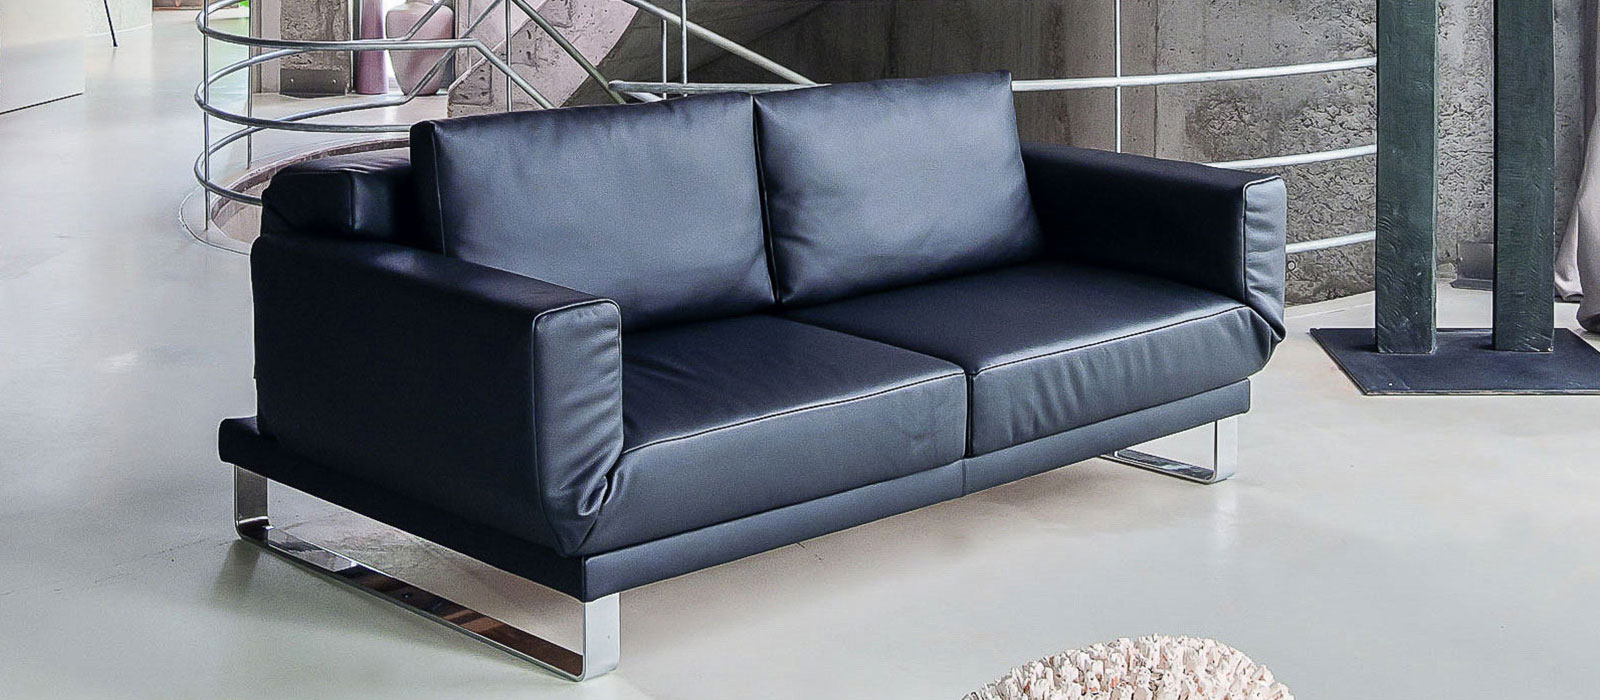 riga xl schlafsofa von franz fertig sofabed. Black Bedroom Furniture Sets. Home Design Ideas